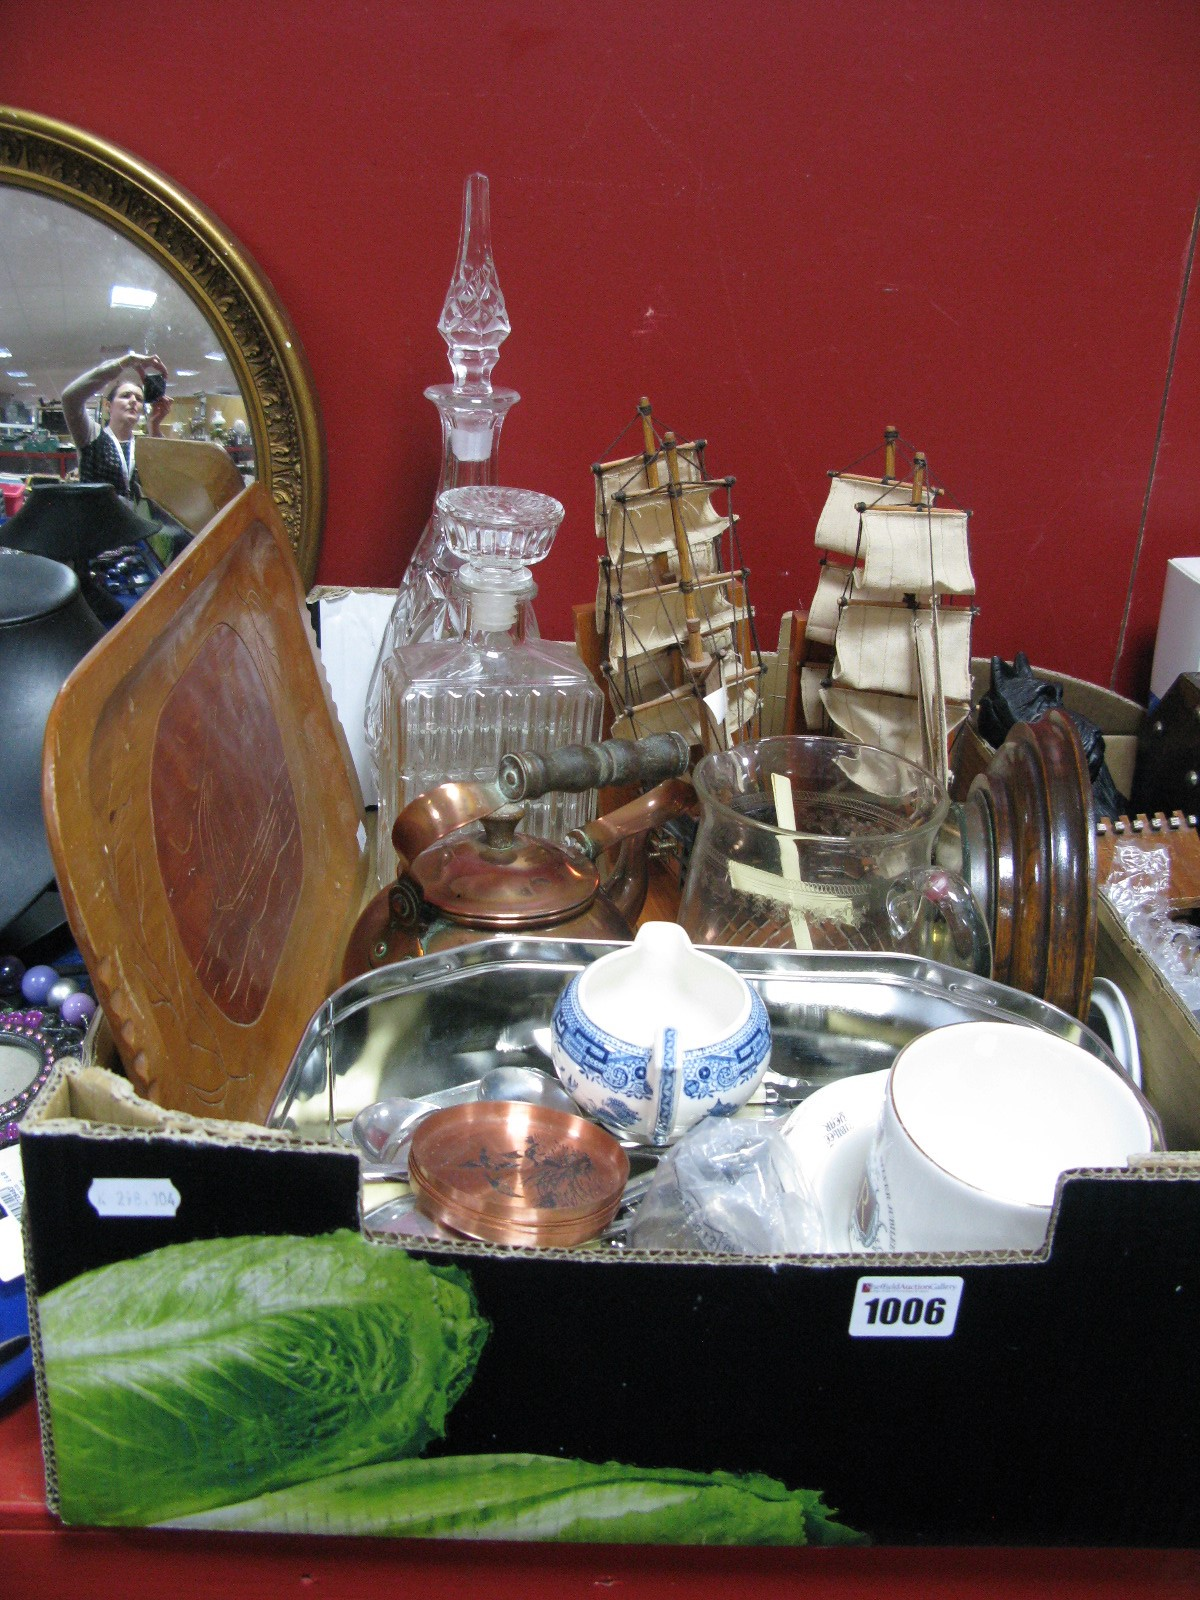 Lot 1006 - Circular oak Framed Wall Barometer, Cutlery, tray, decanters, galleon book ends, copper kettle,